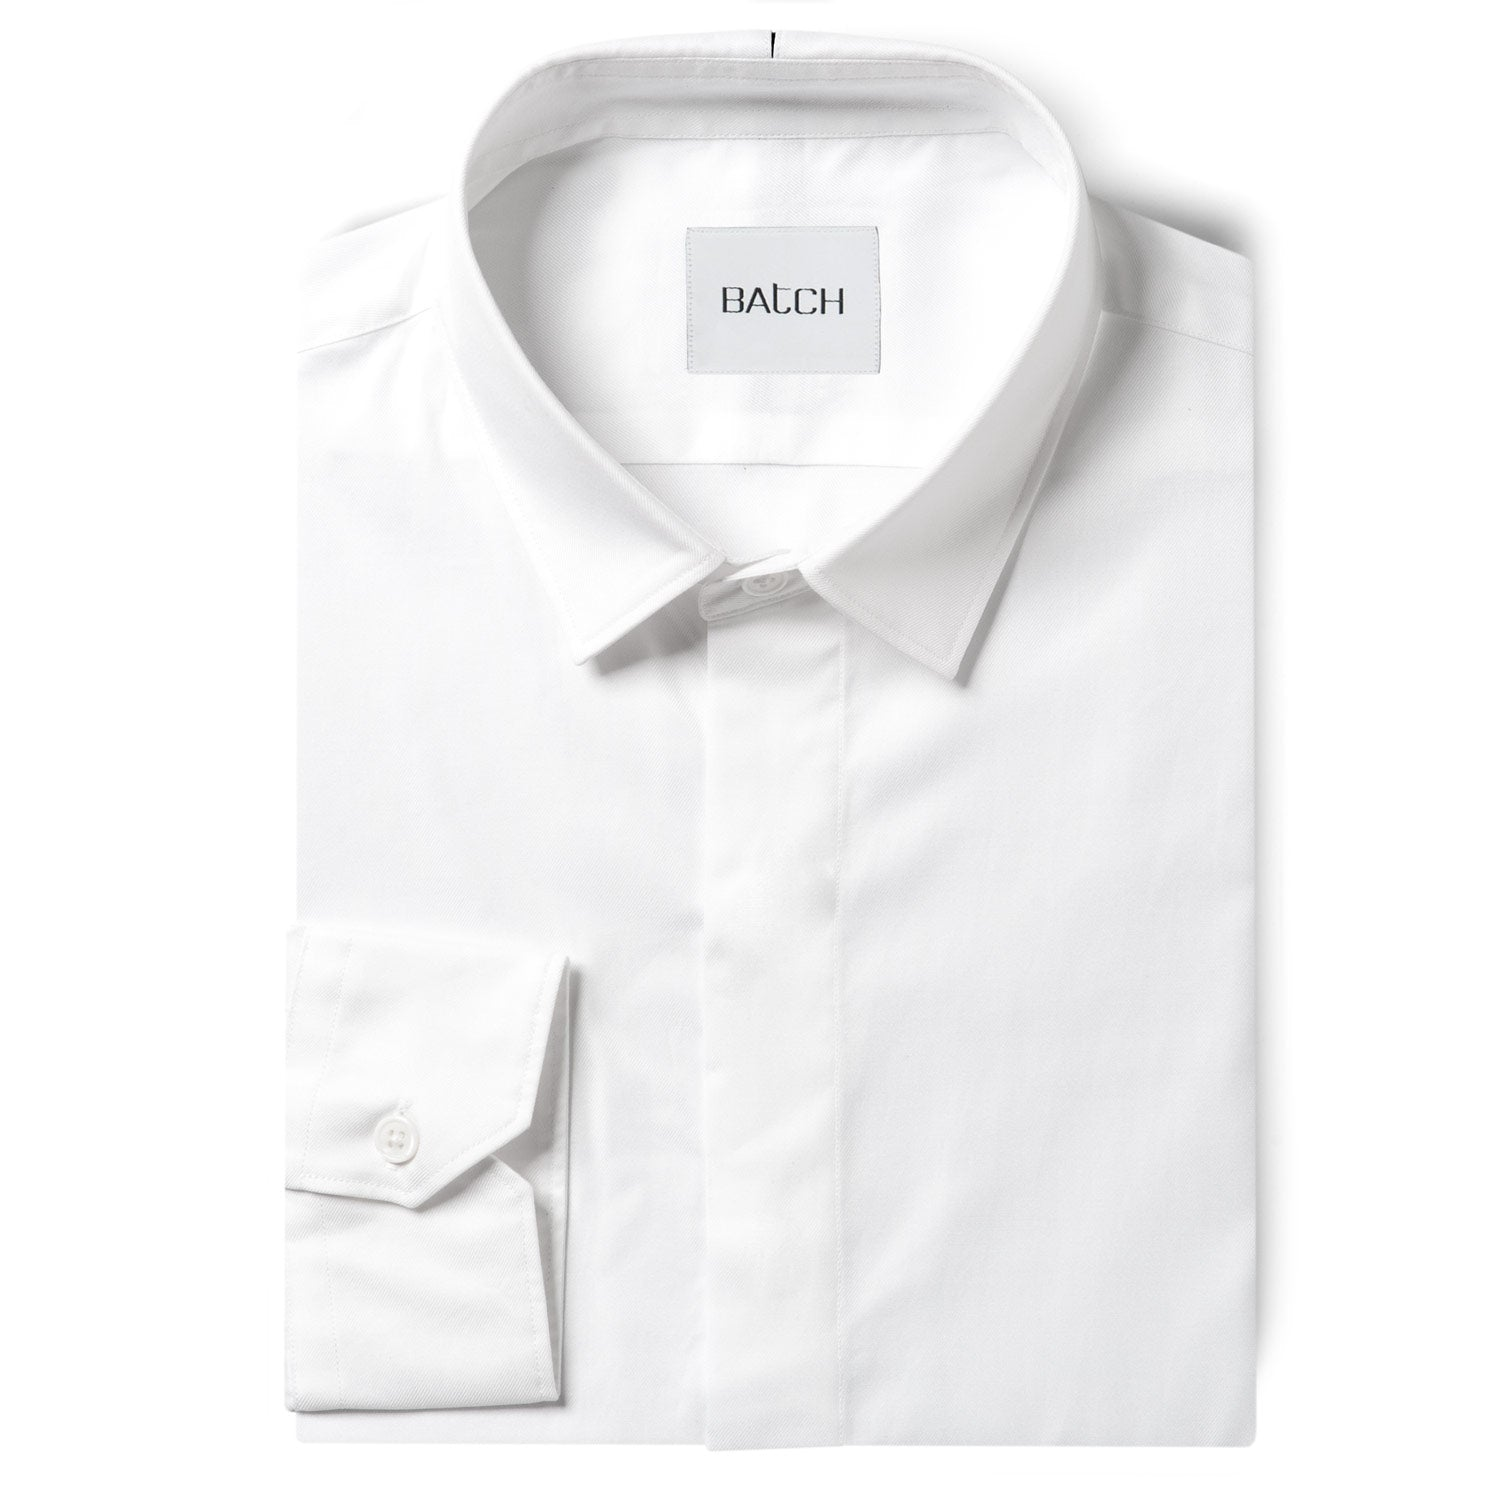 Essential SC Shirt No Pocket Hidden Buttons - Pure White Wrinkle Defiant Twill